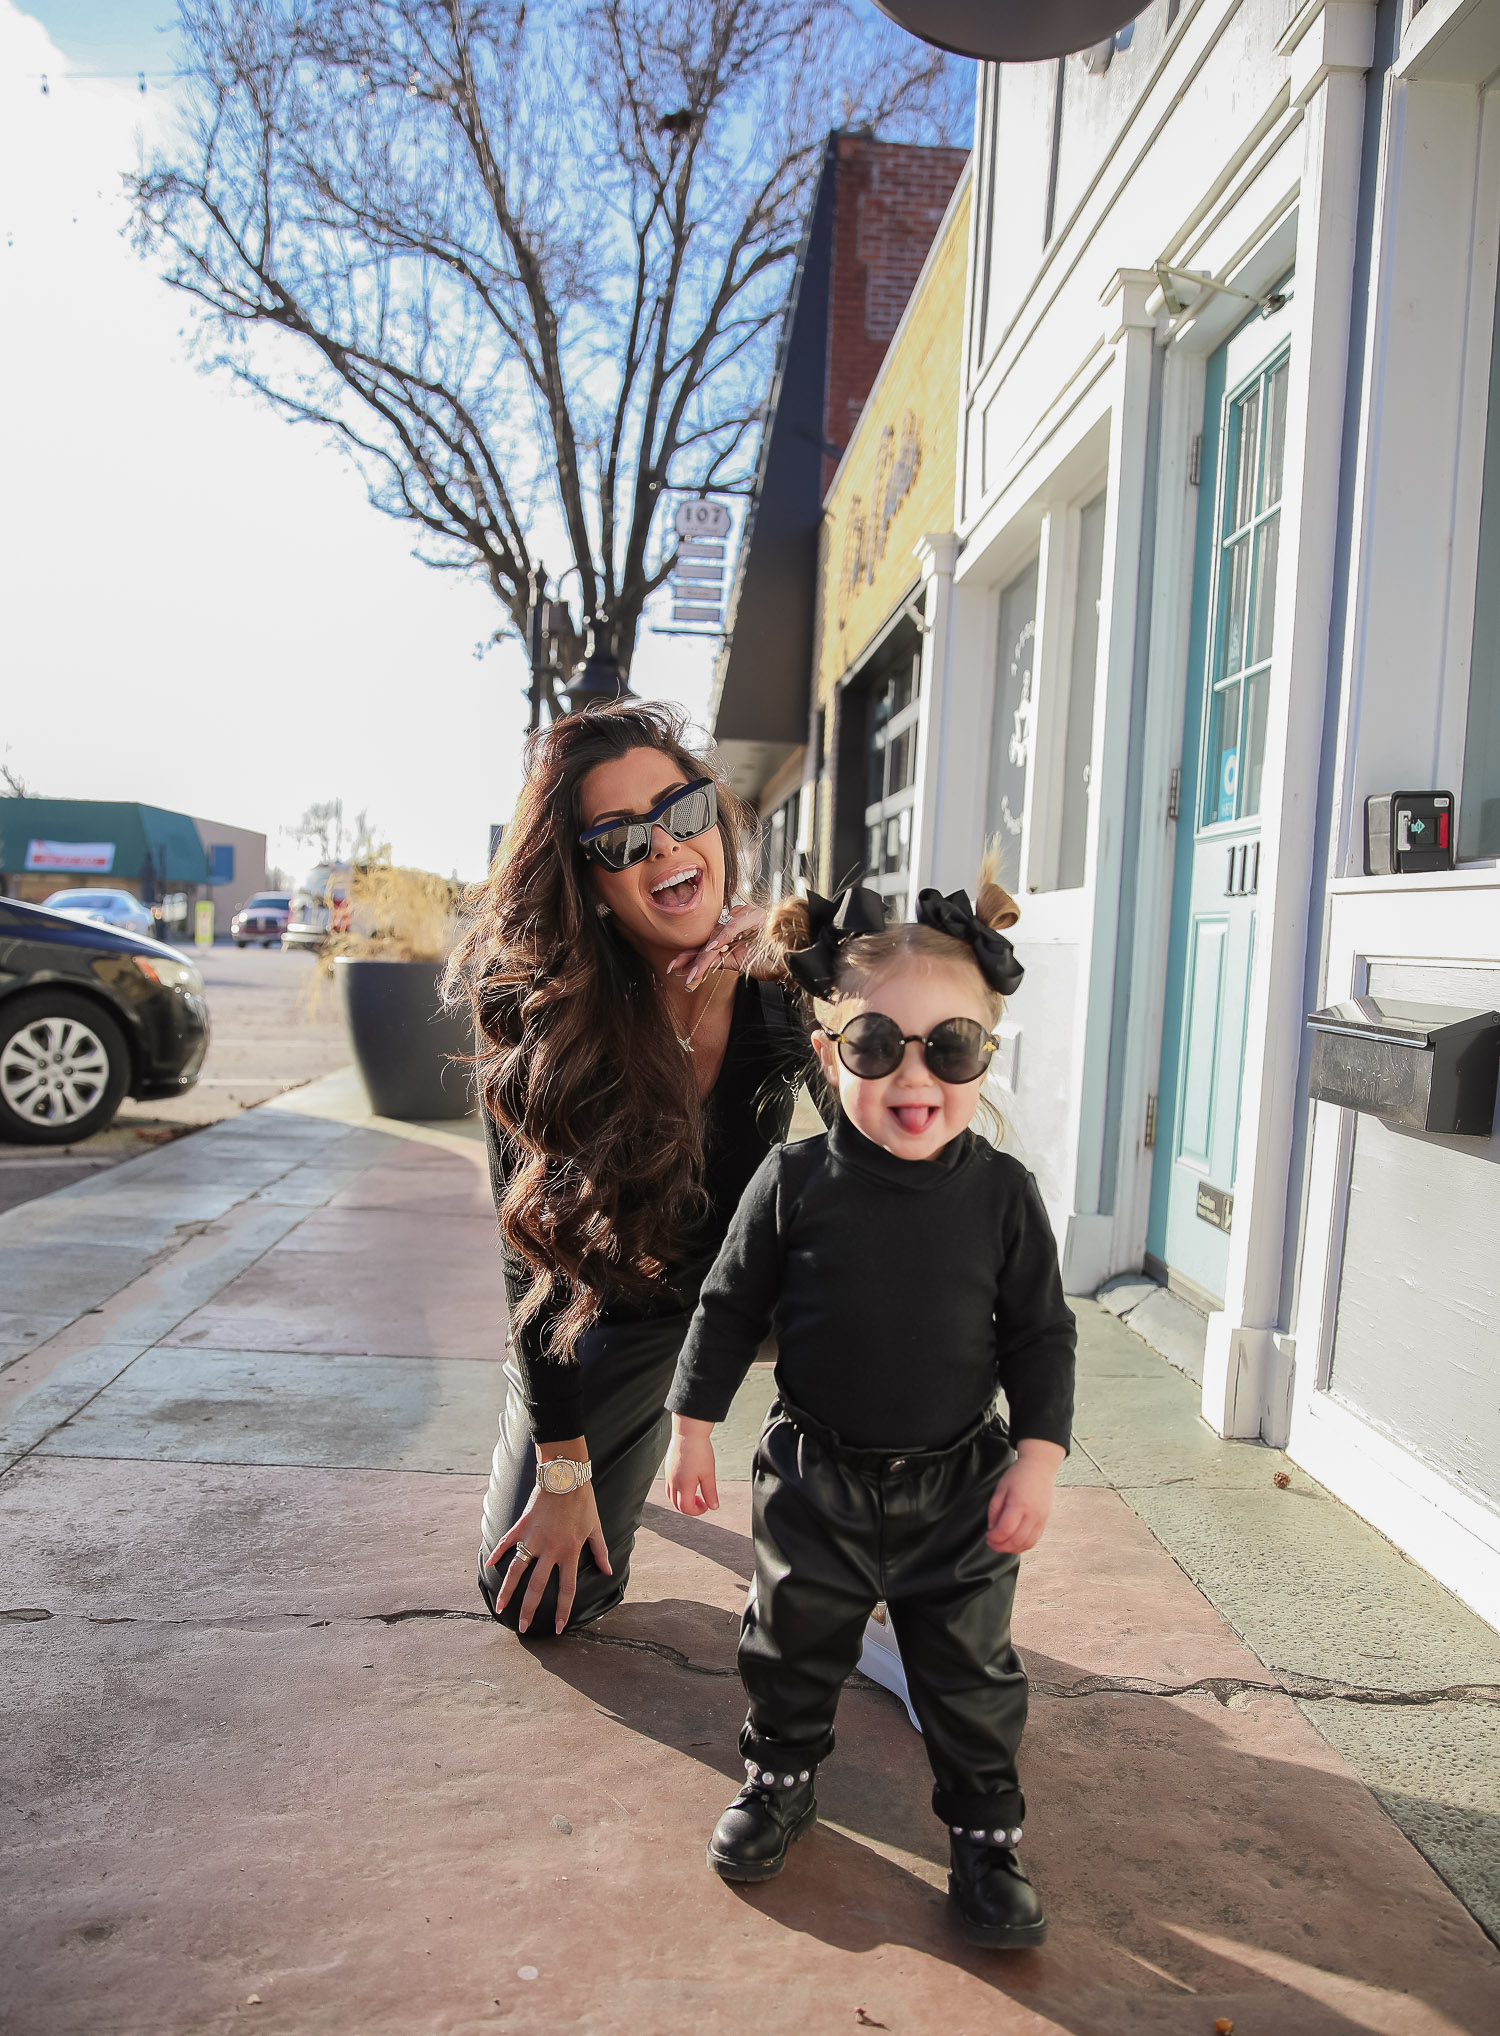 matching mommy daughter fashion outfits Pinterest, Emily Gemma, Nordstrom BP faux leather pants, loewe sunglasses, Alexander mcqueen sneakers gold white outfit pinterest